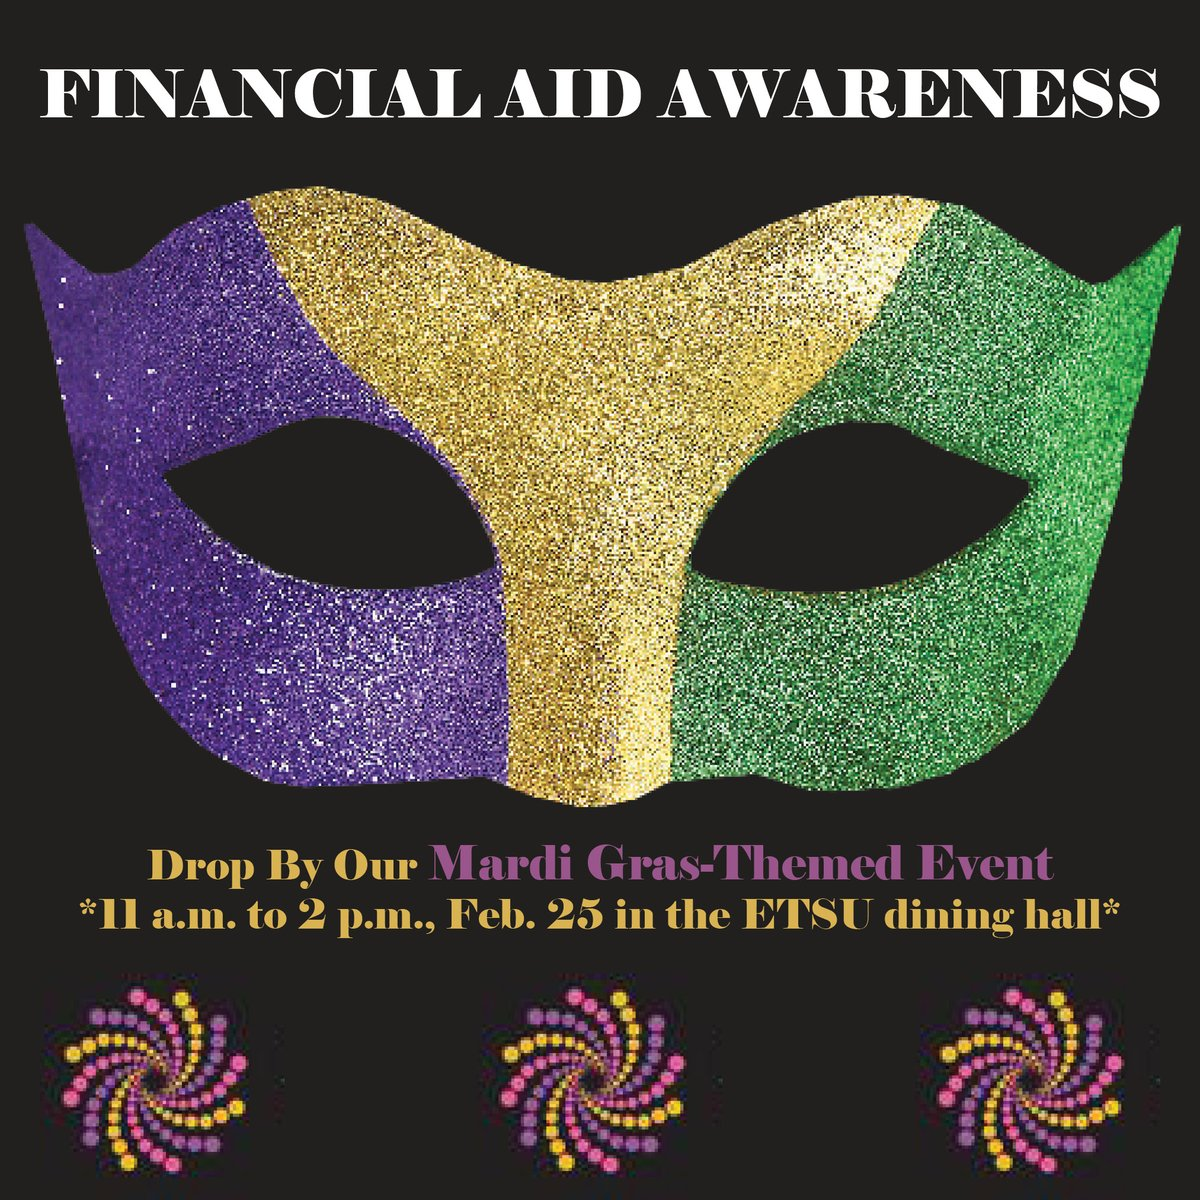 All students are welcome as we host a Mardi Gras themed event to close out Financial Aid Awareness month! Join us at the ETSU dining hall from 11 a.m. to 2 p.m. on Tuesday, February 25. https://www.etsu.edu/finaid/events.php … #ETSUFinancialAid #FinancialAidAwareness @etsu